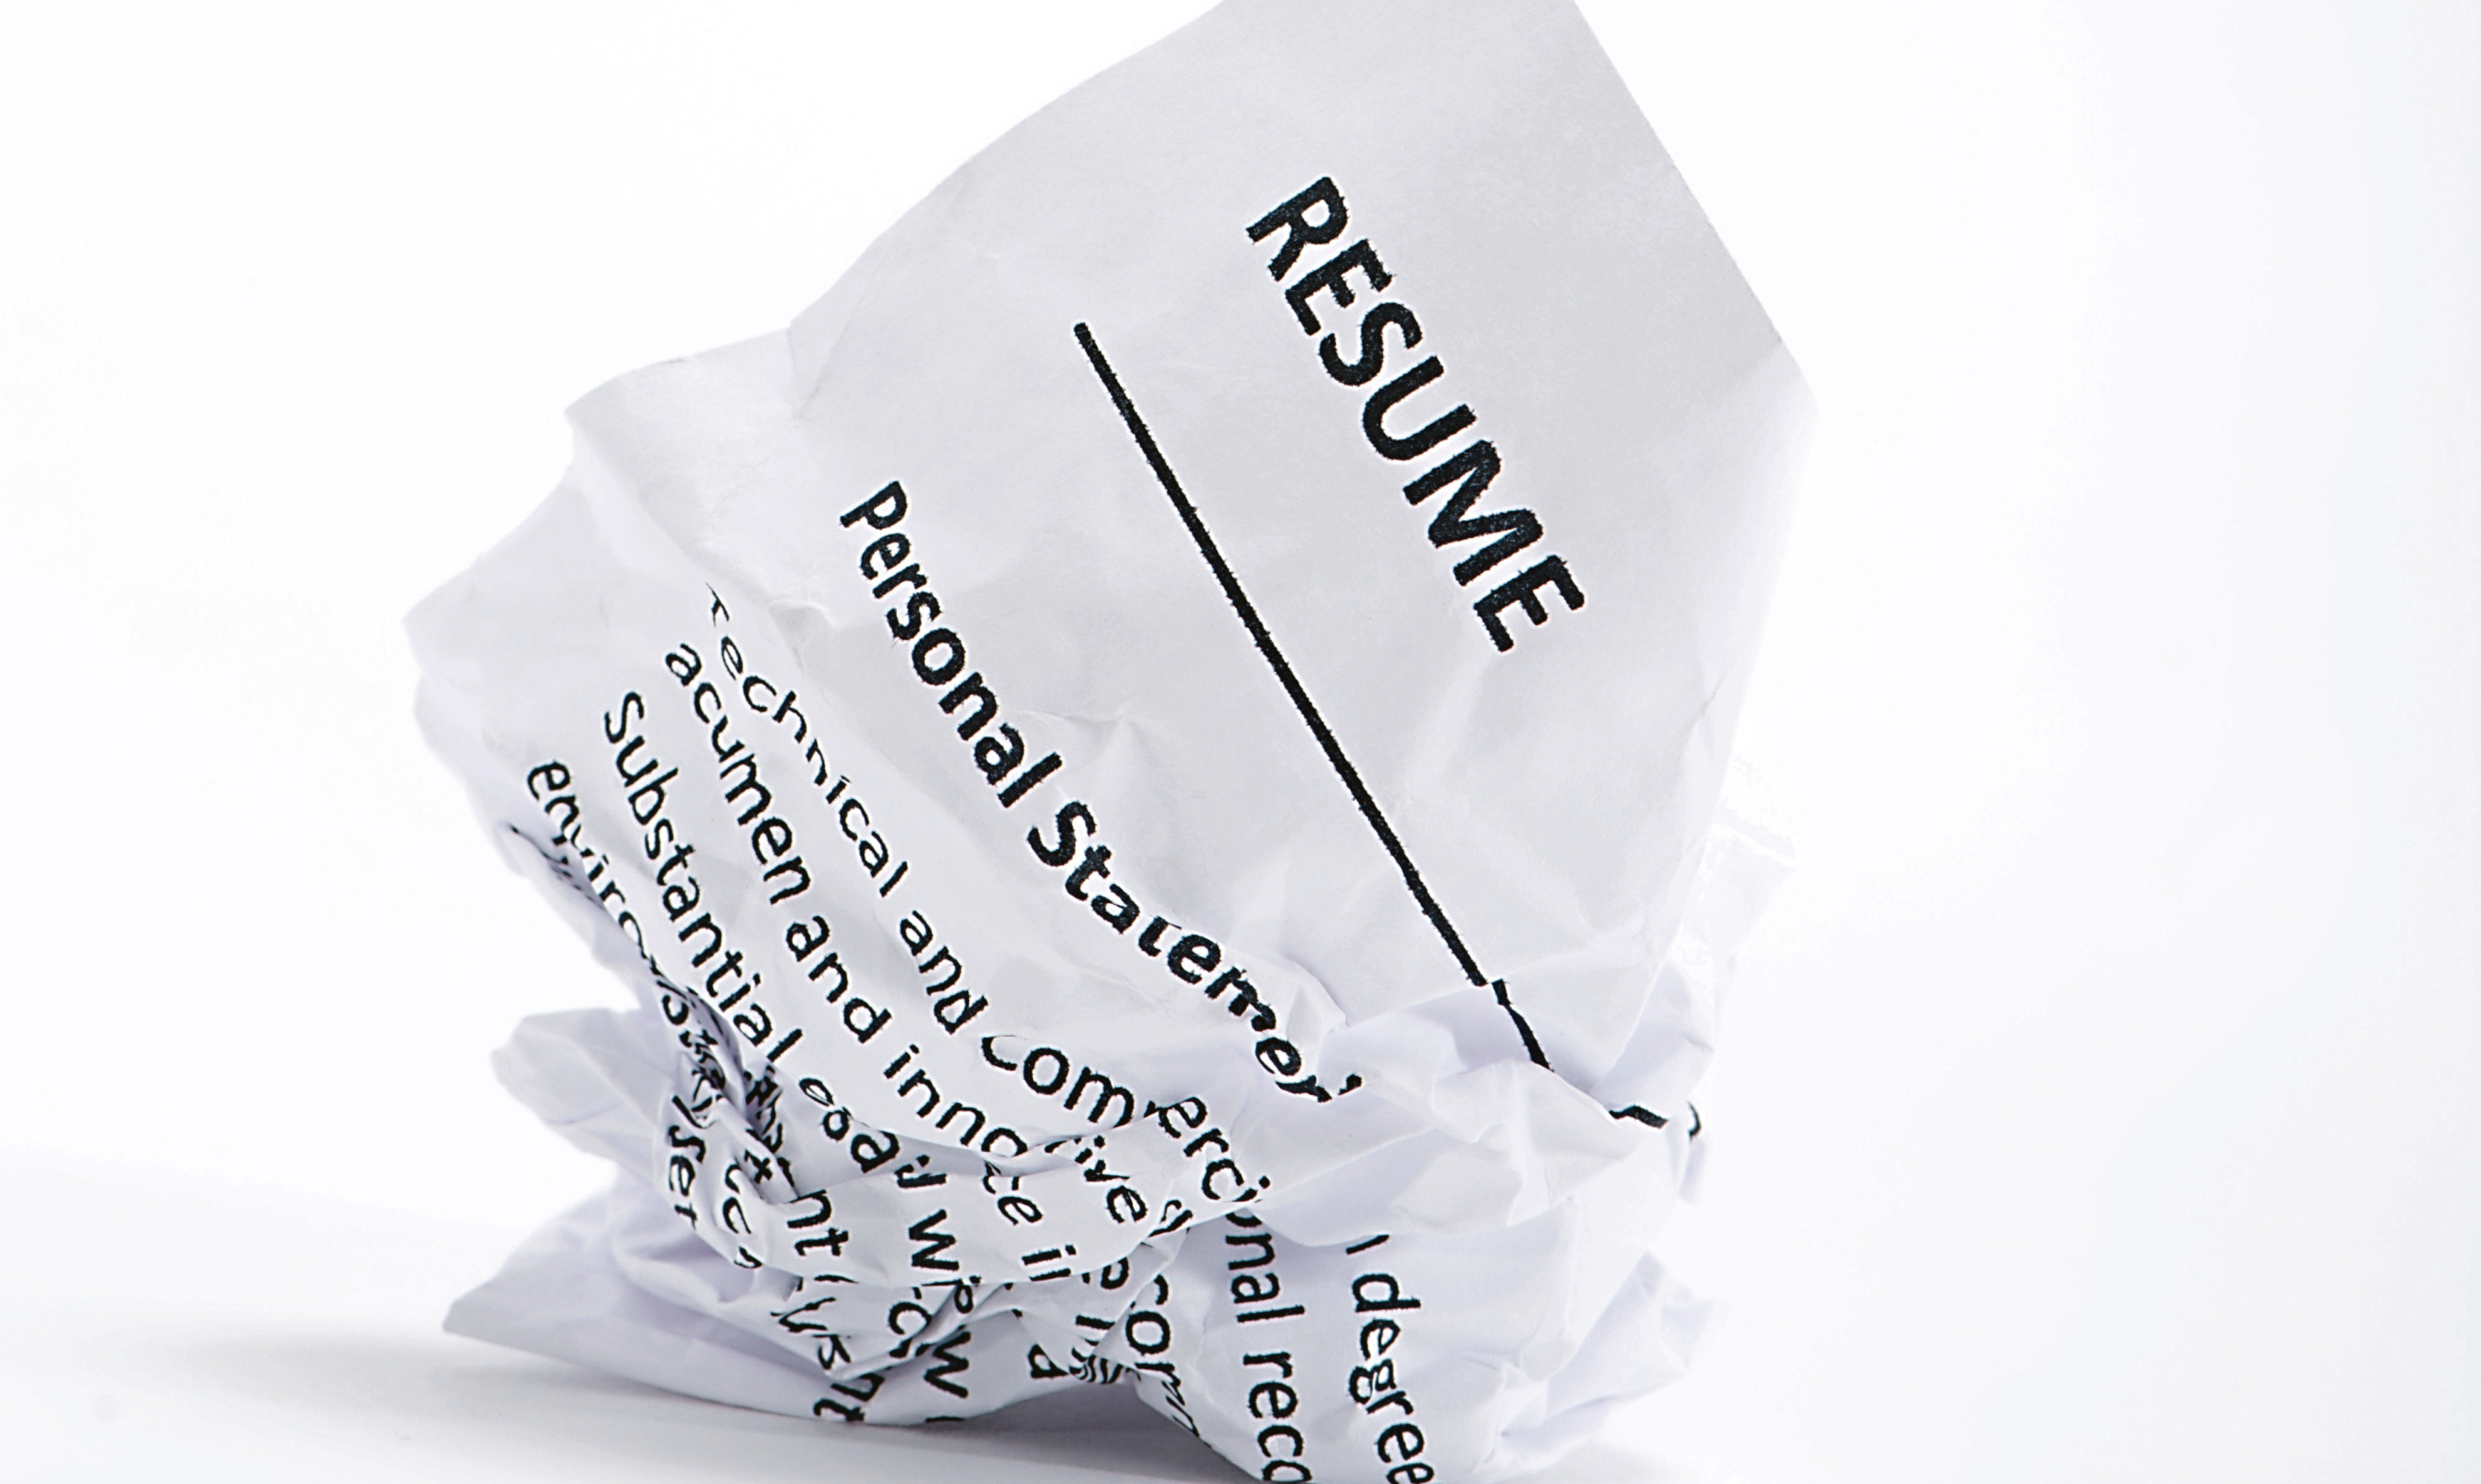 Is a crumpled up resume a sign of the times?